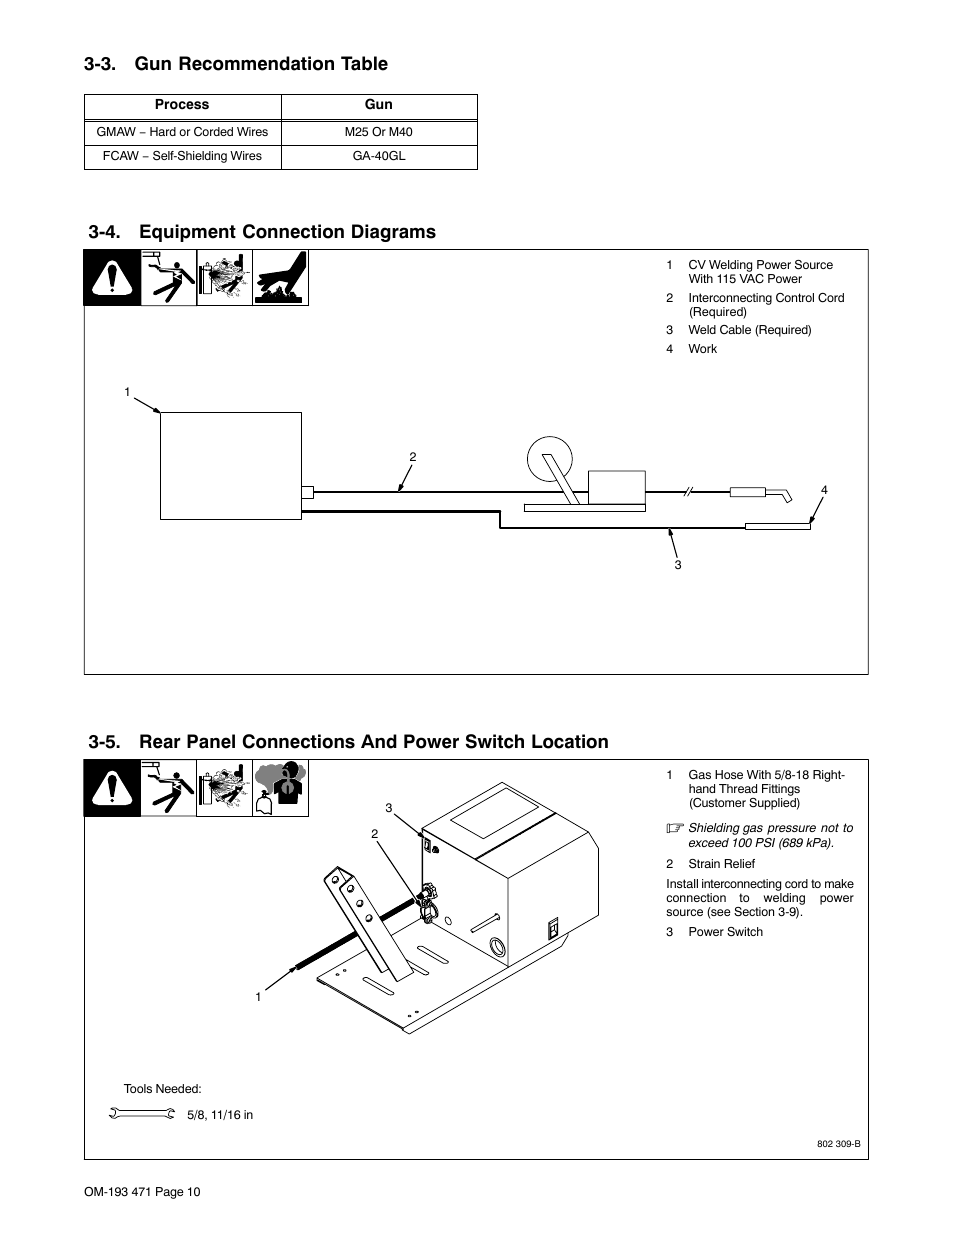 3 Gun Recommendation Table 4 Equipment Connection Diagrams Gas Welding Diagram Miller Electric R 115 User Manual Page 14 36